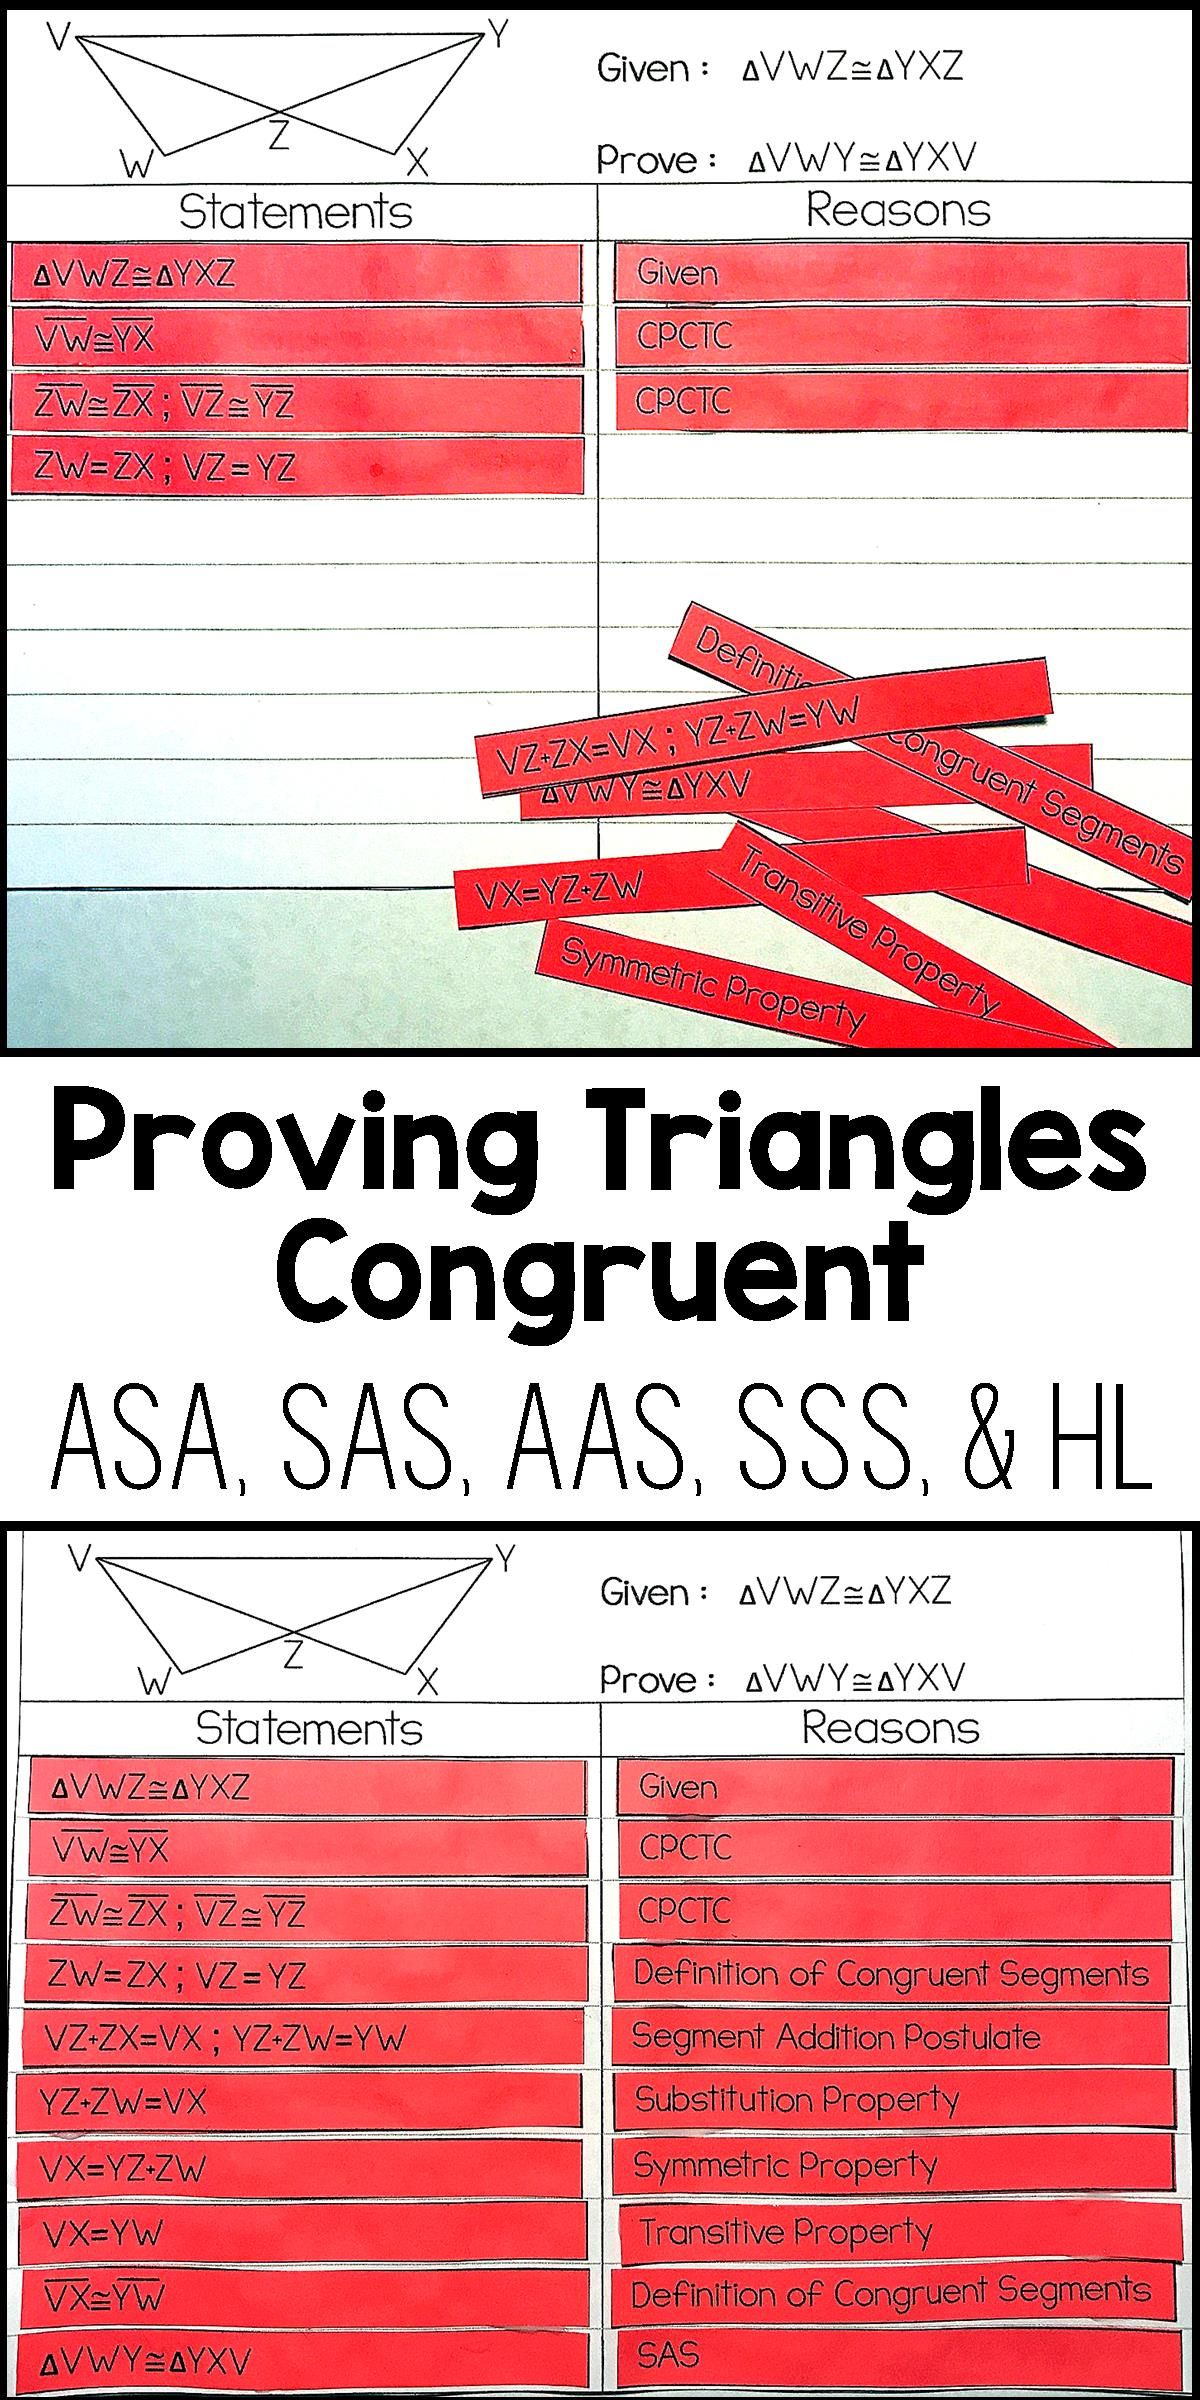 Worksheets Geometry Proofs Worksheets proving triangles congruent proof activity geometry proofs my students loved this it was the perfect worksheet alternative to